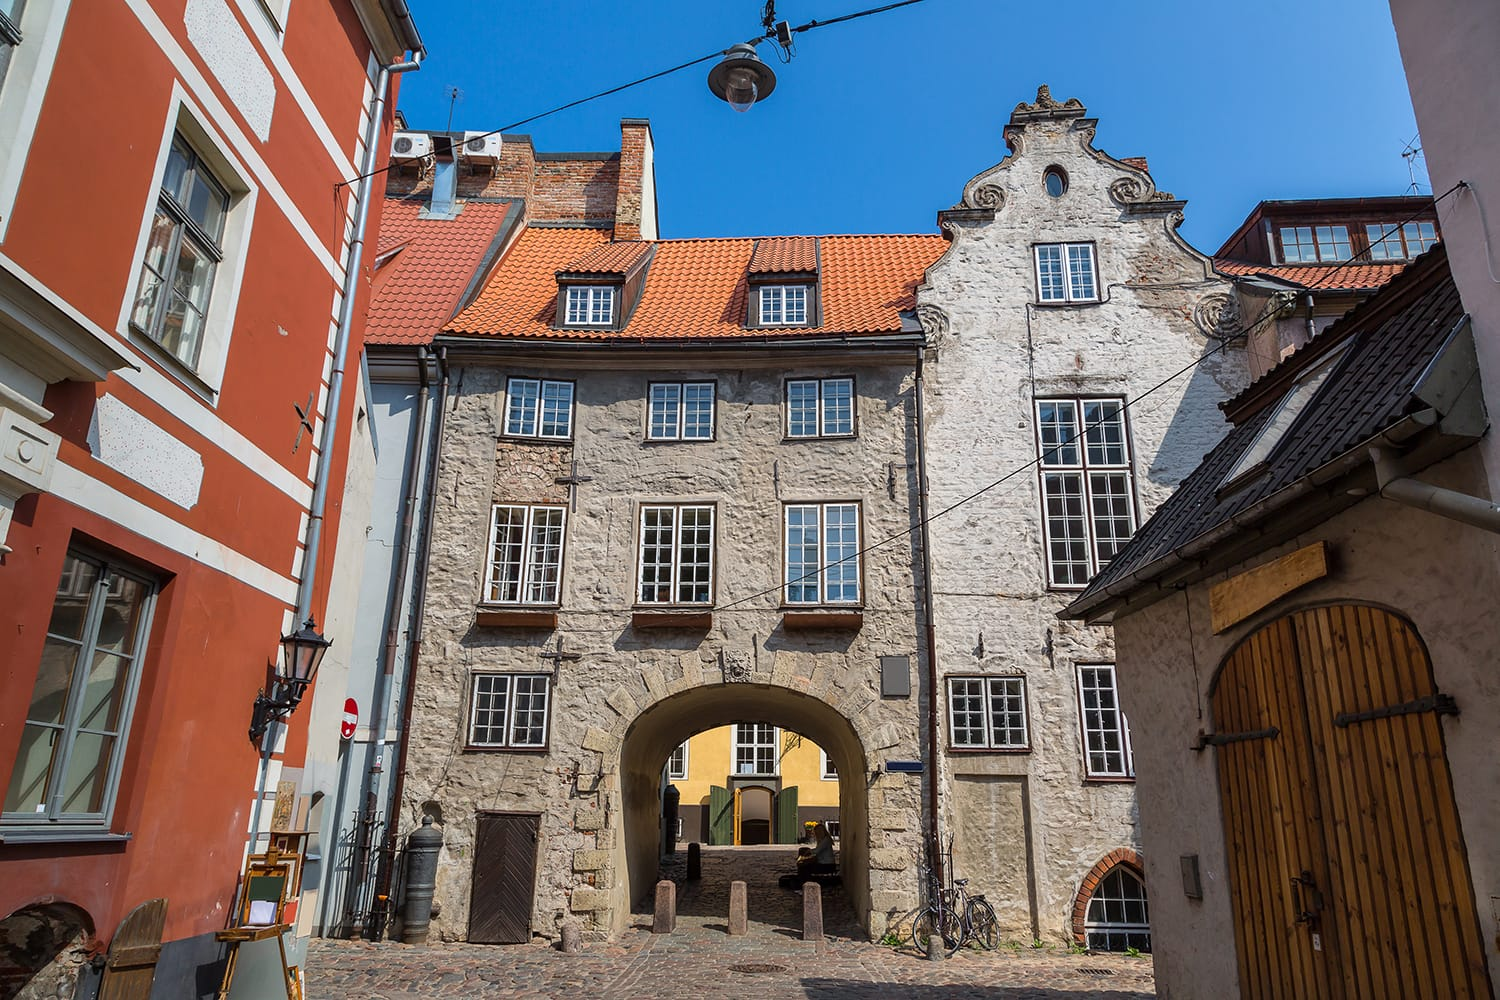 wedish gate in the old city of Riga in a beautiful summer day, Latvia